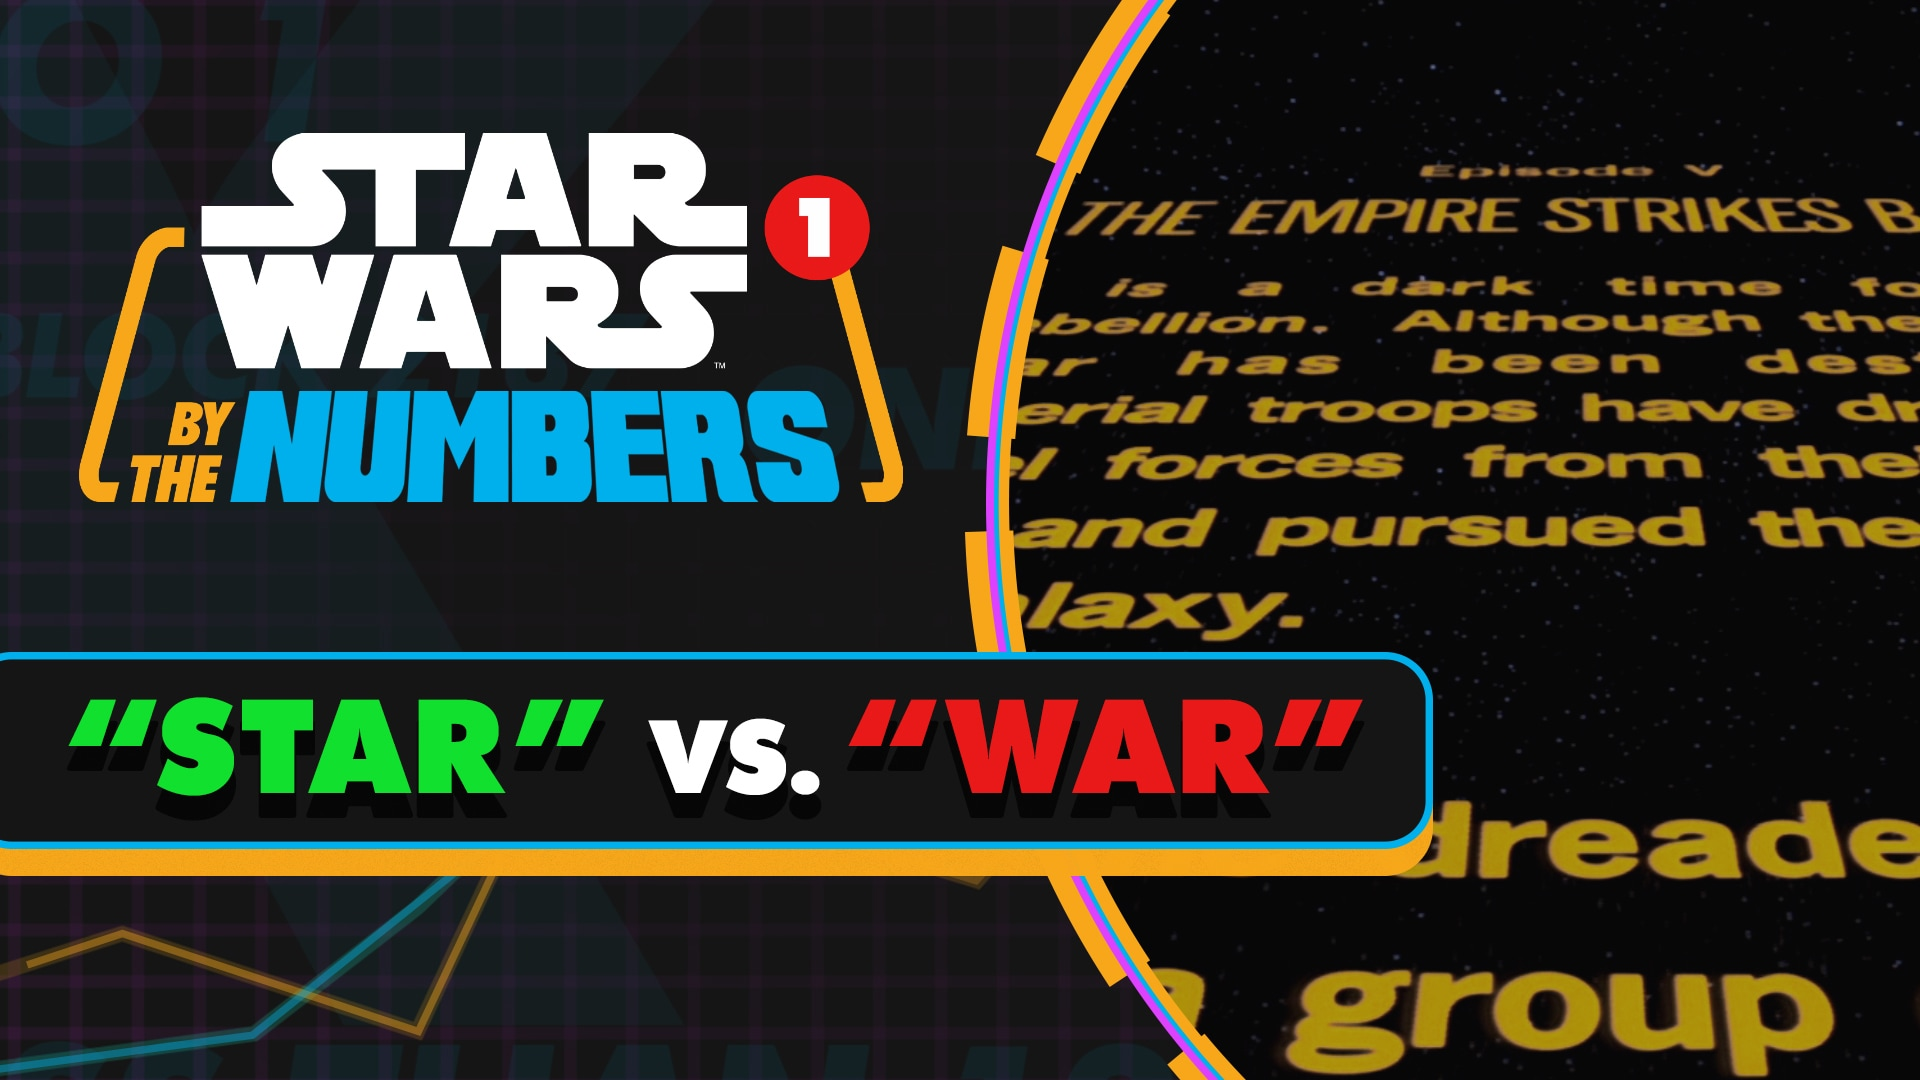 'Star' Vs. 'War' in the Star Wars Movies! | Star Wars By the Numbers